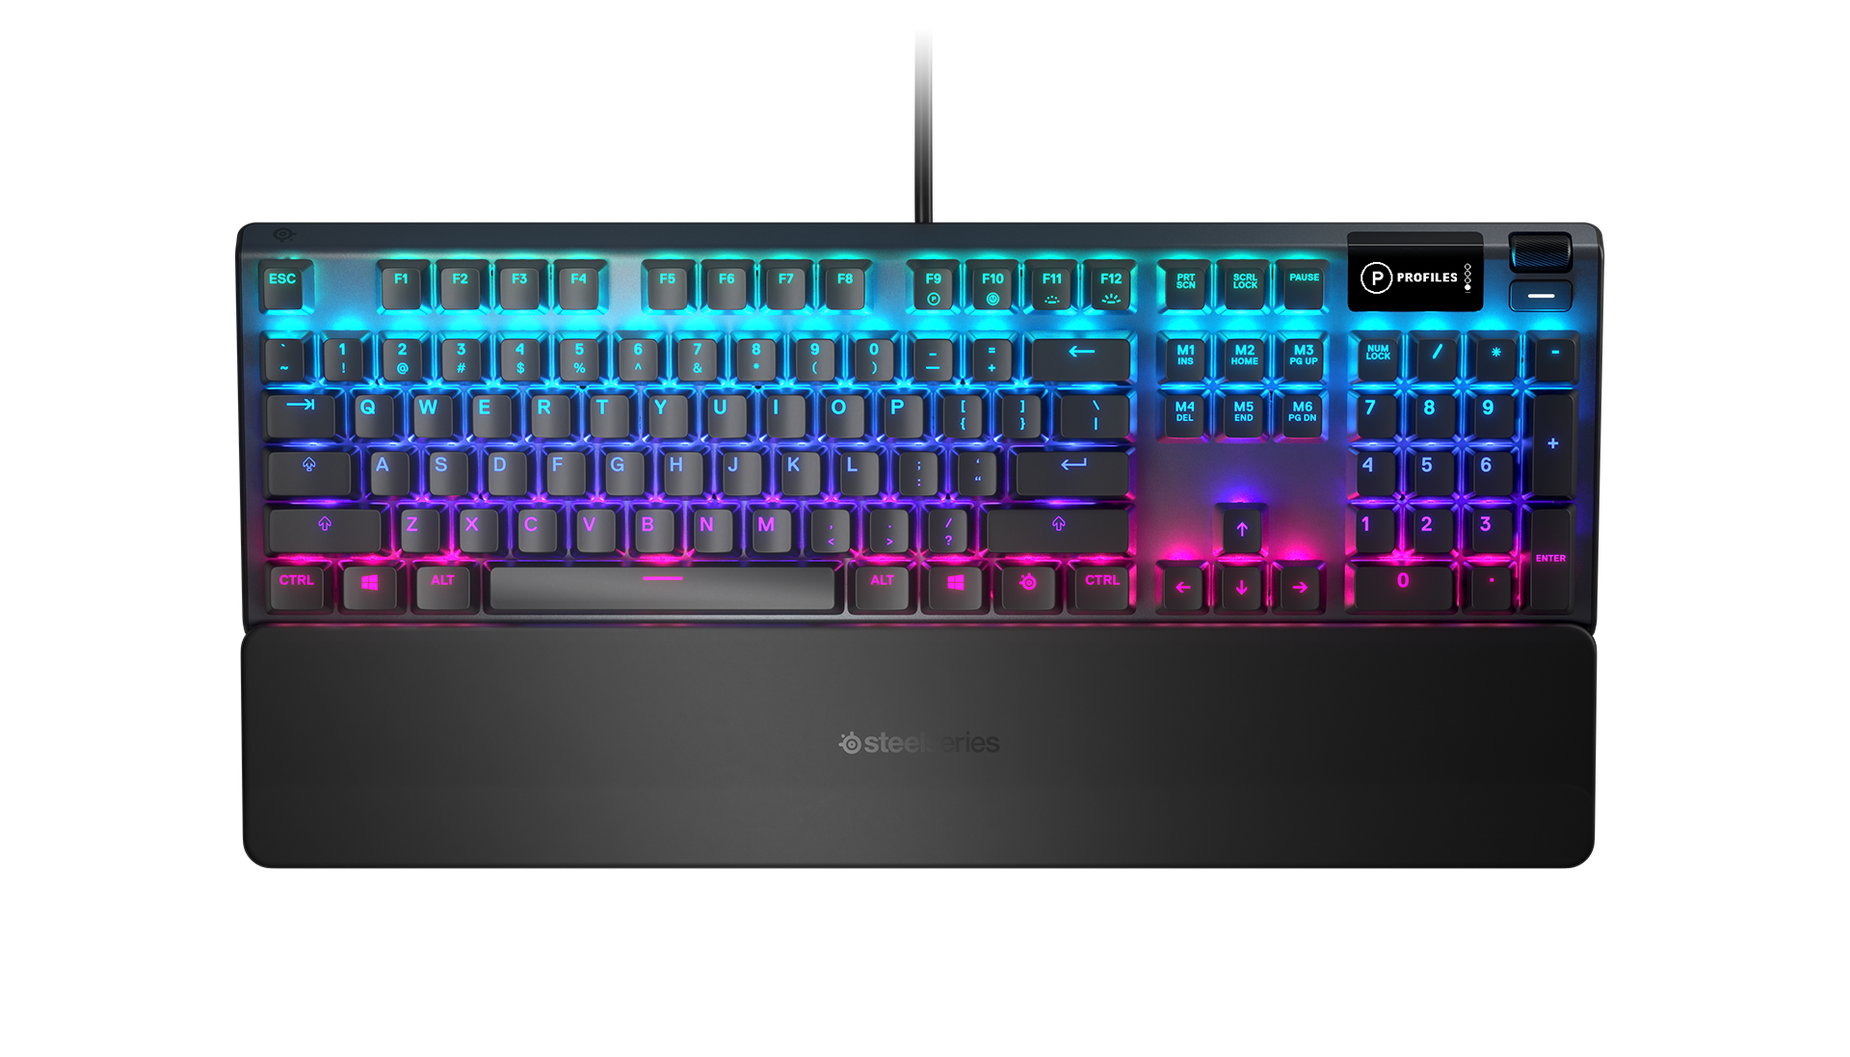 Top angle of the Apex 5 gaming keyboard